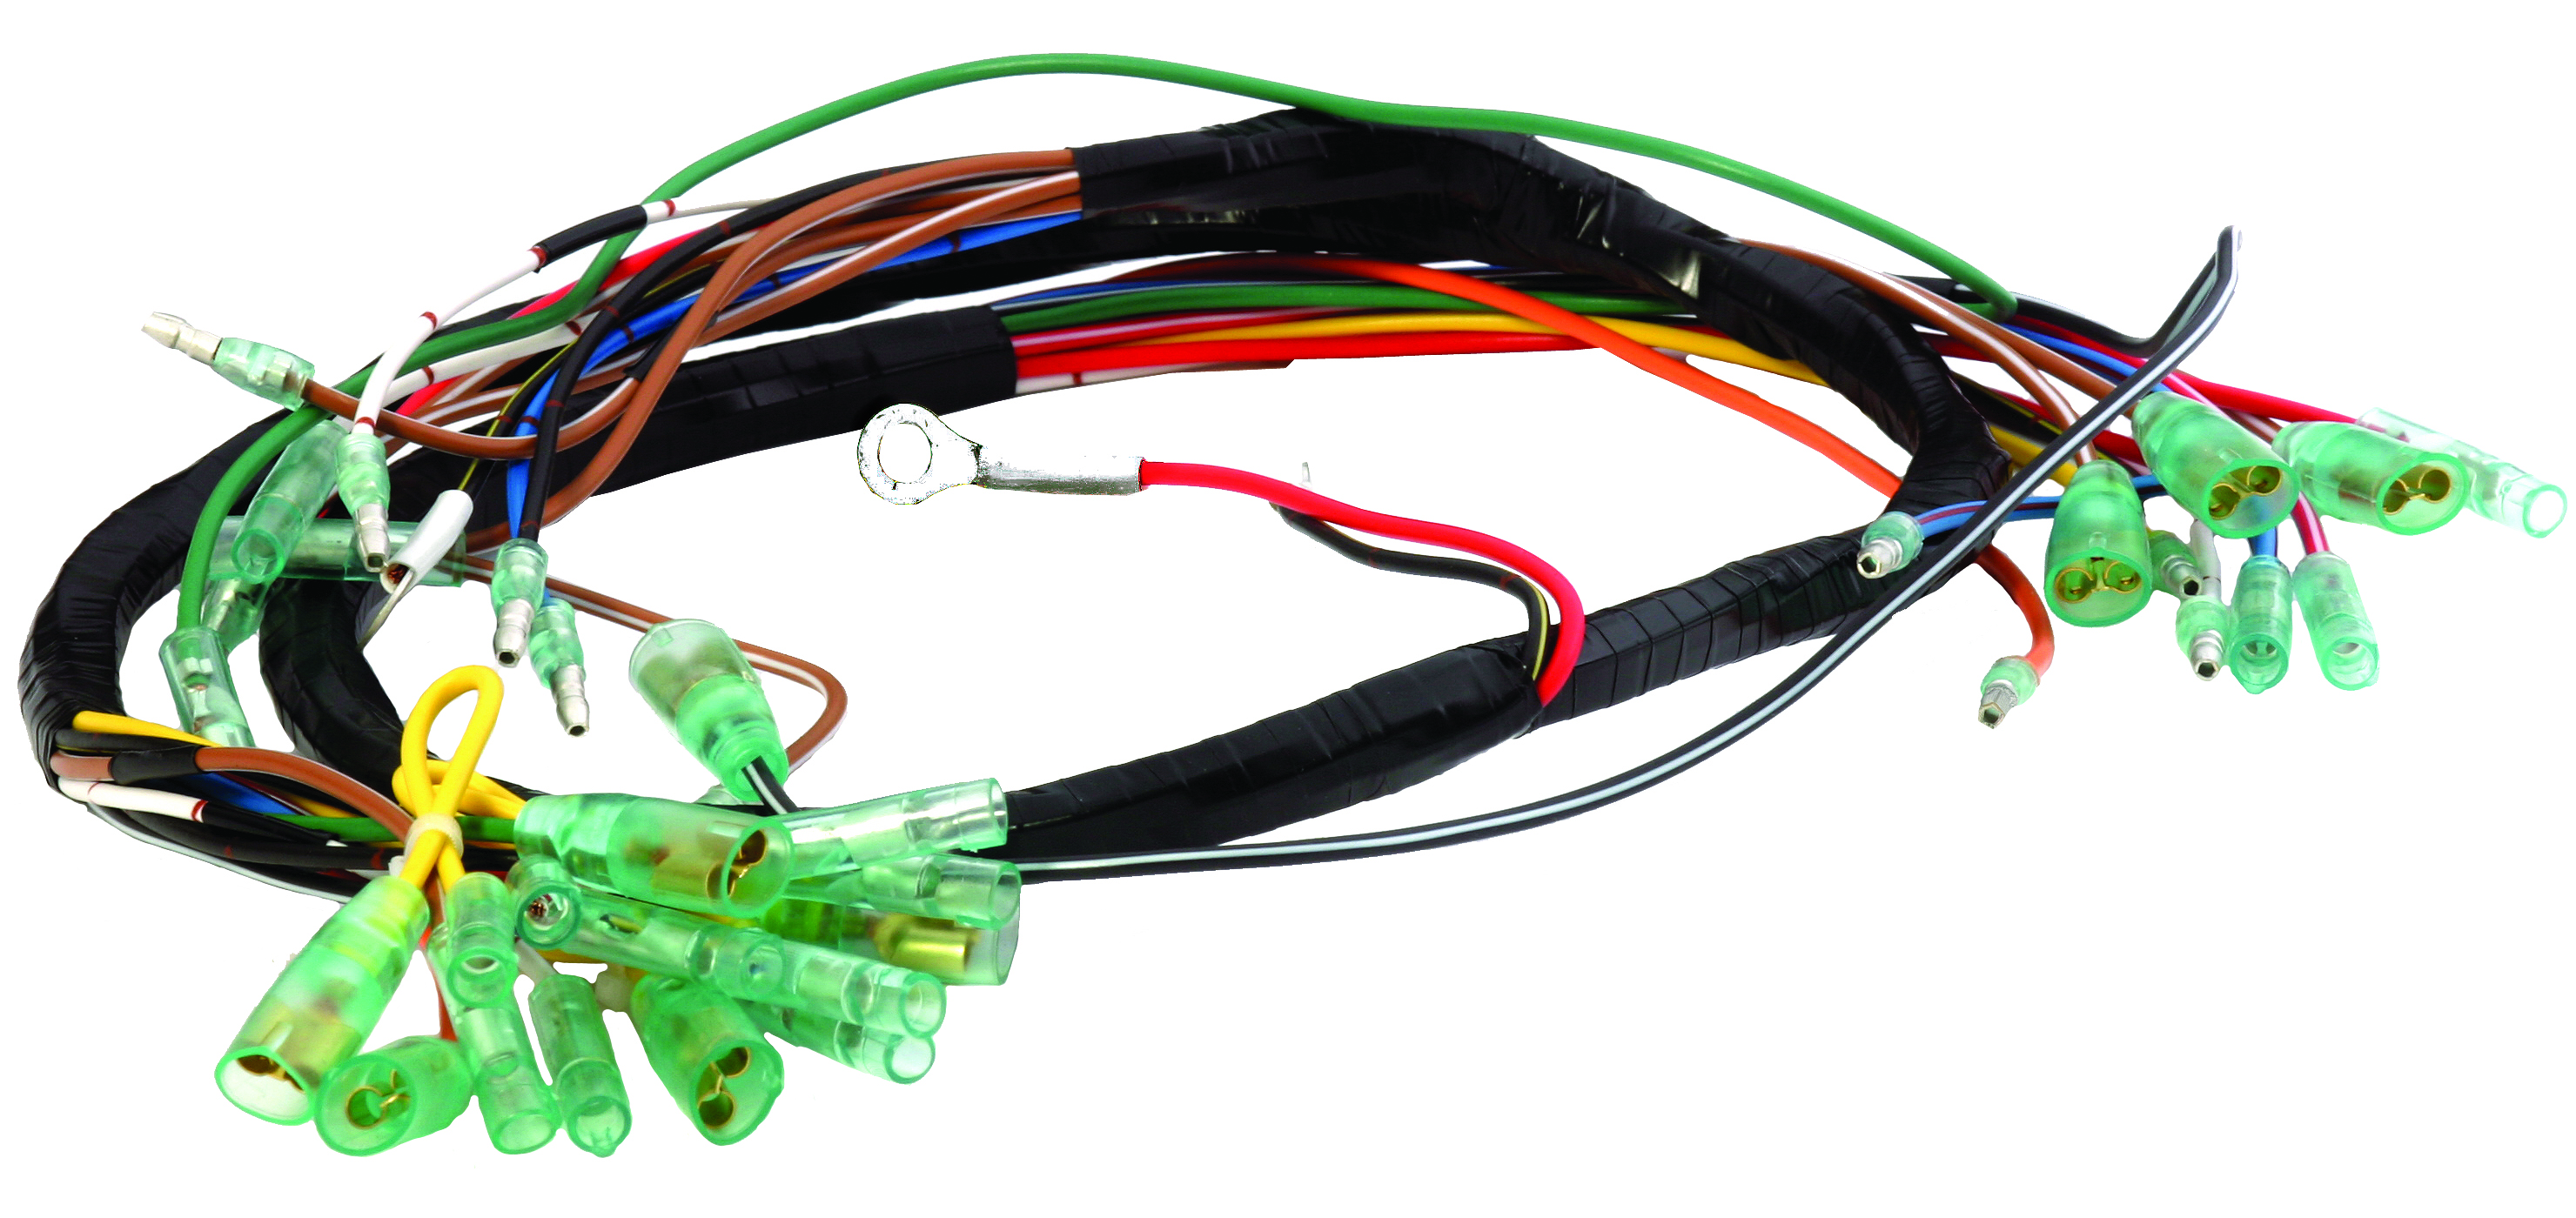 [DIAGRAM_3US]  Sudco Intl. Corp. - Gallery | Kz1000 Wiring Harness |  | Sudco